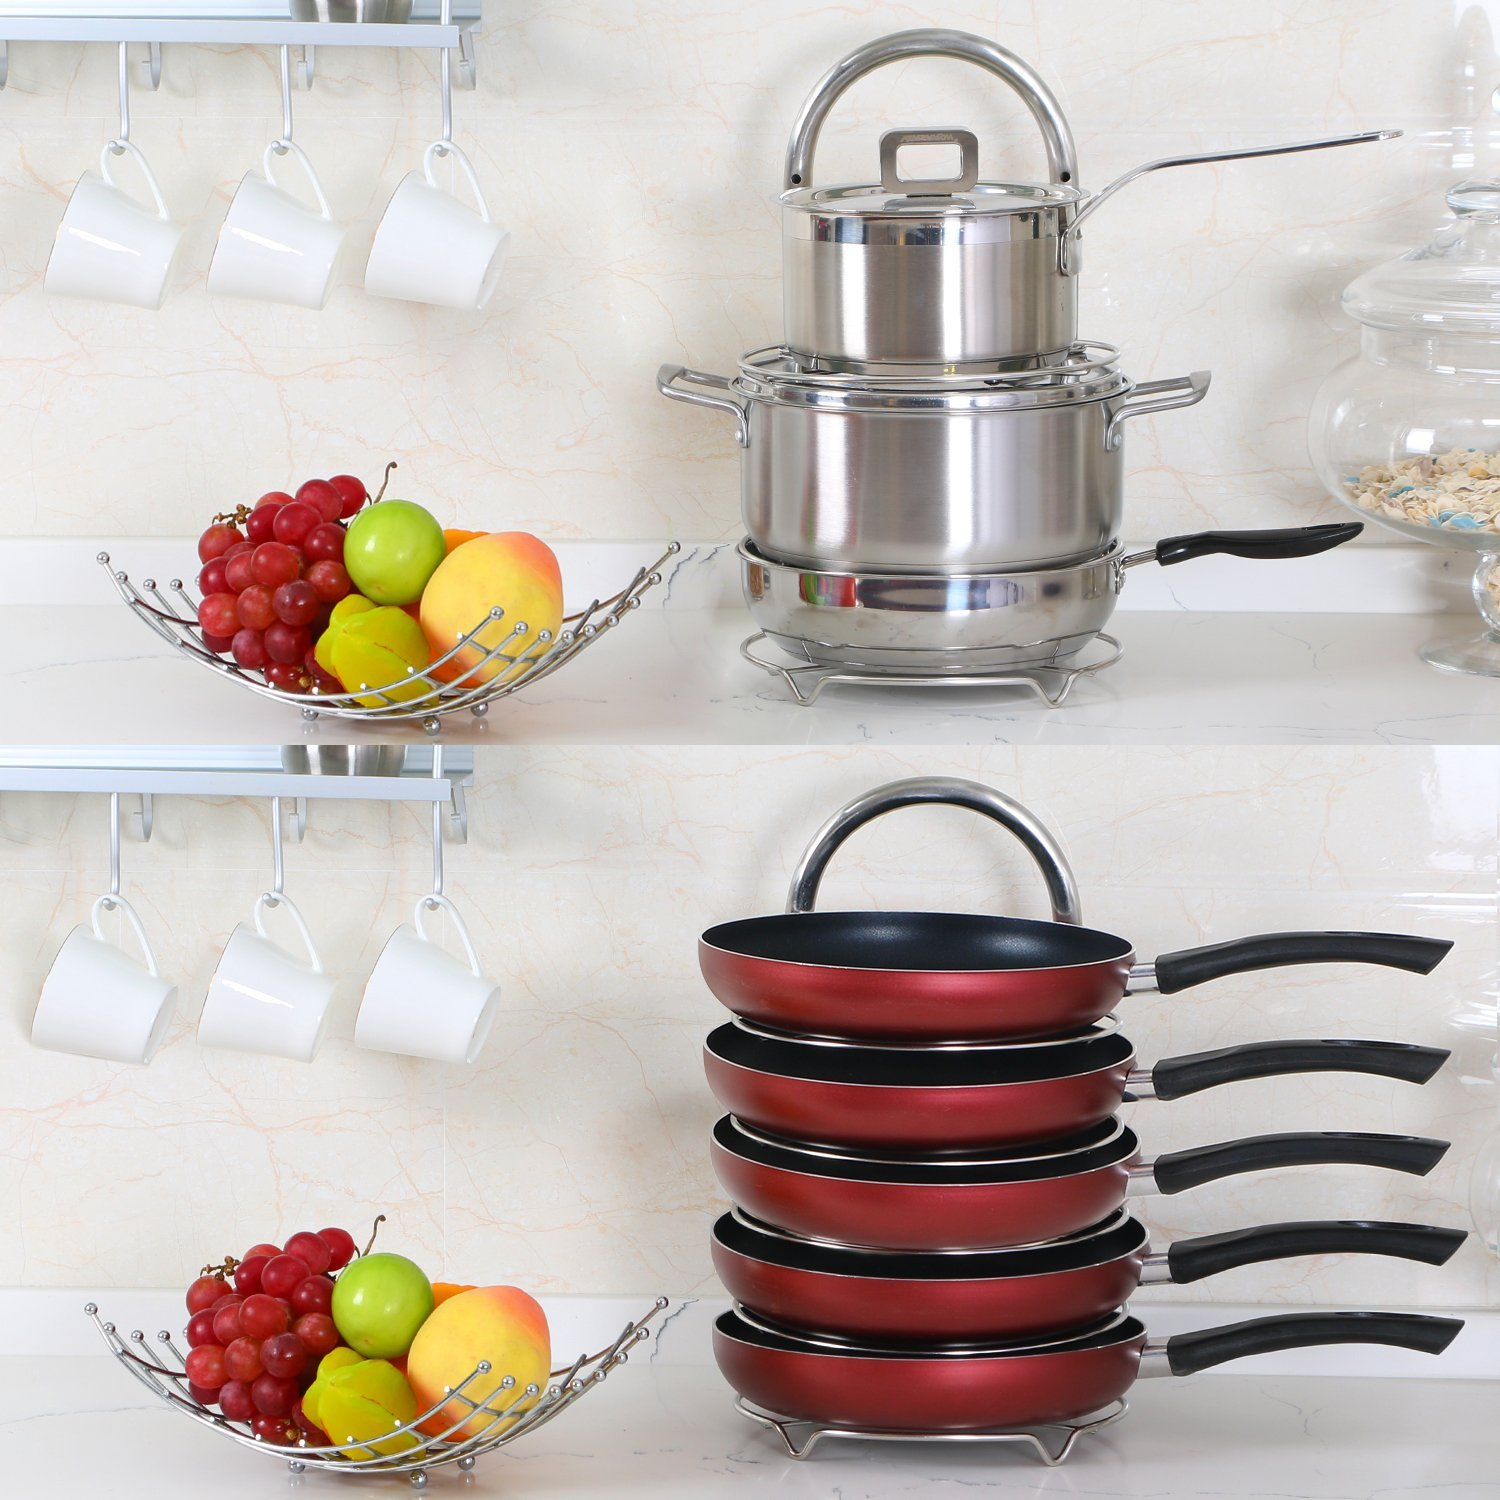 Lifewit 5-Tier Adjustable Stainless Steel Pan Pot Organizer